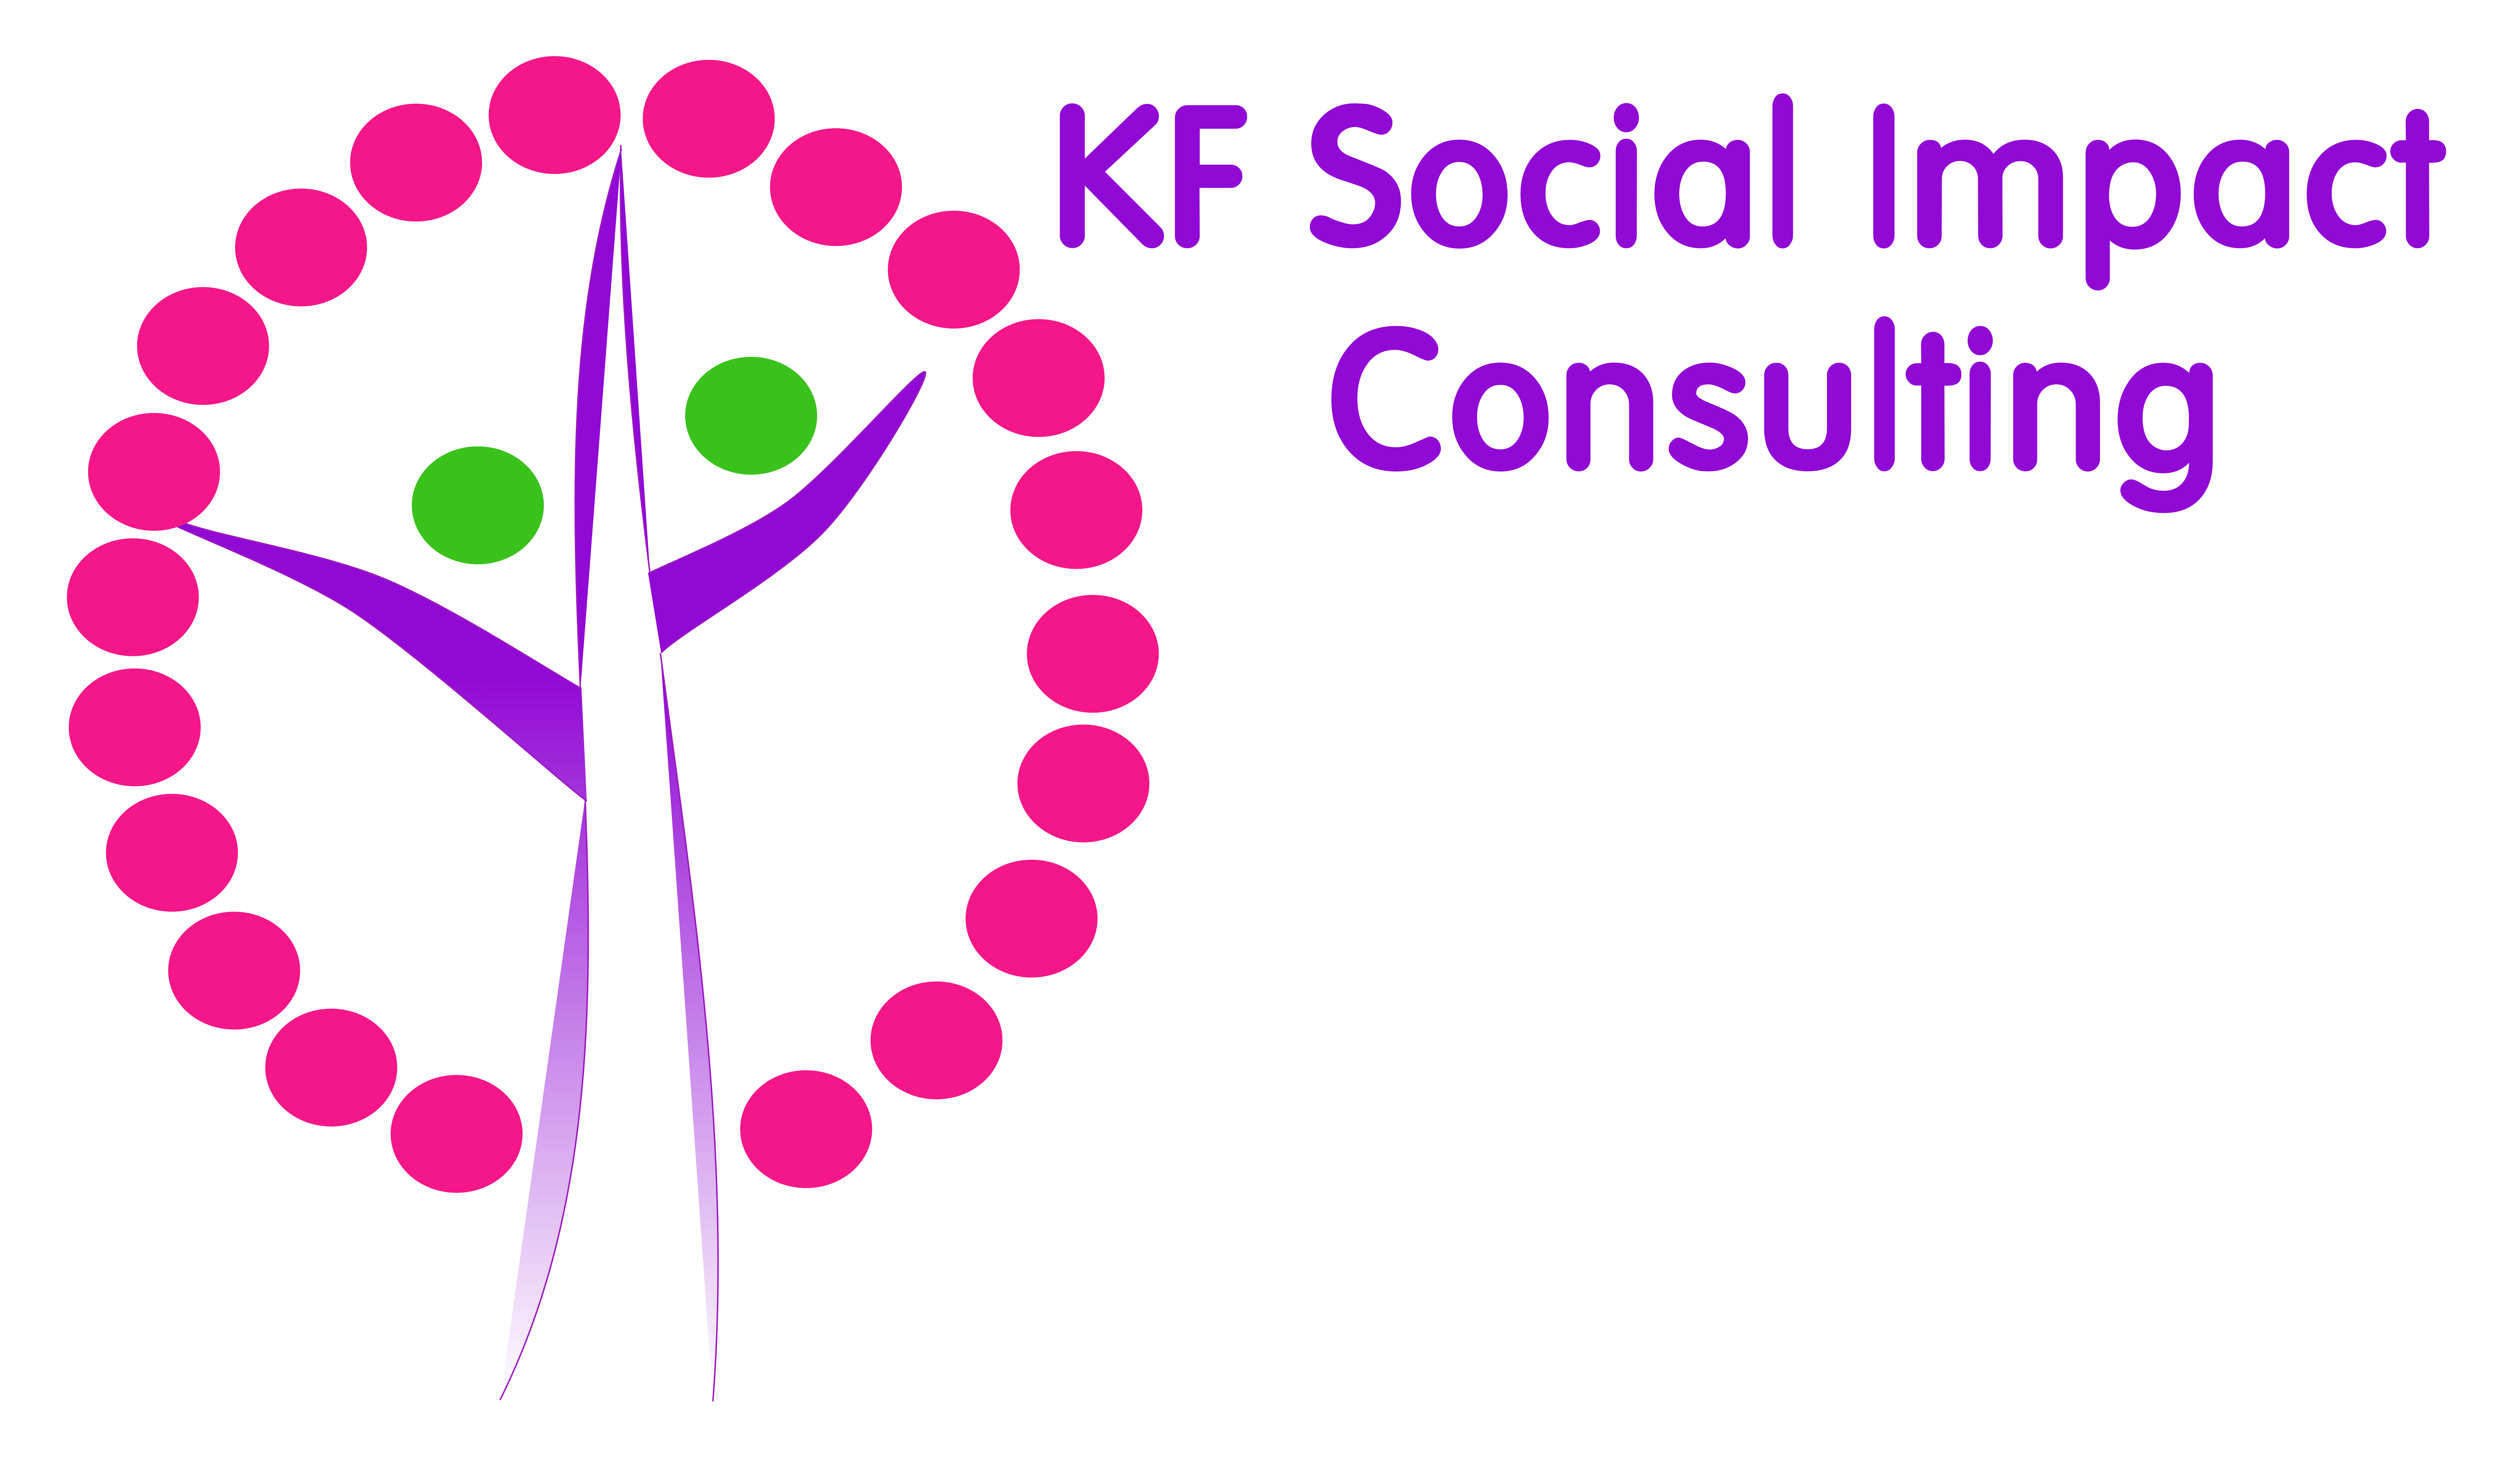 KF Social Impact Consulting Ltd